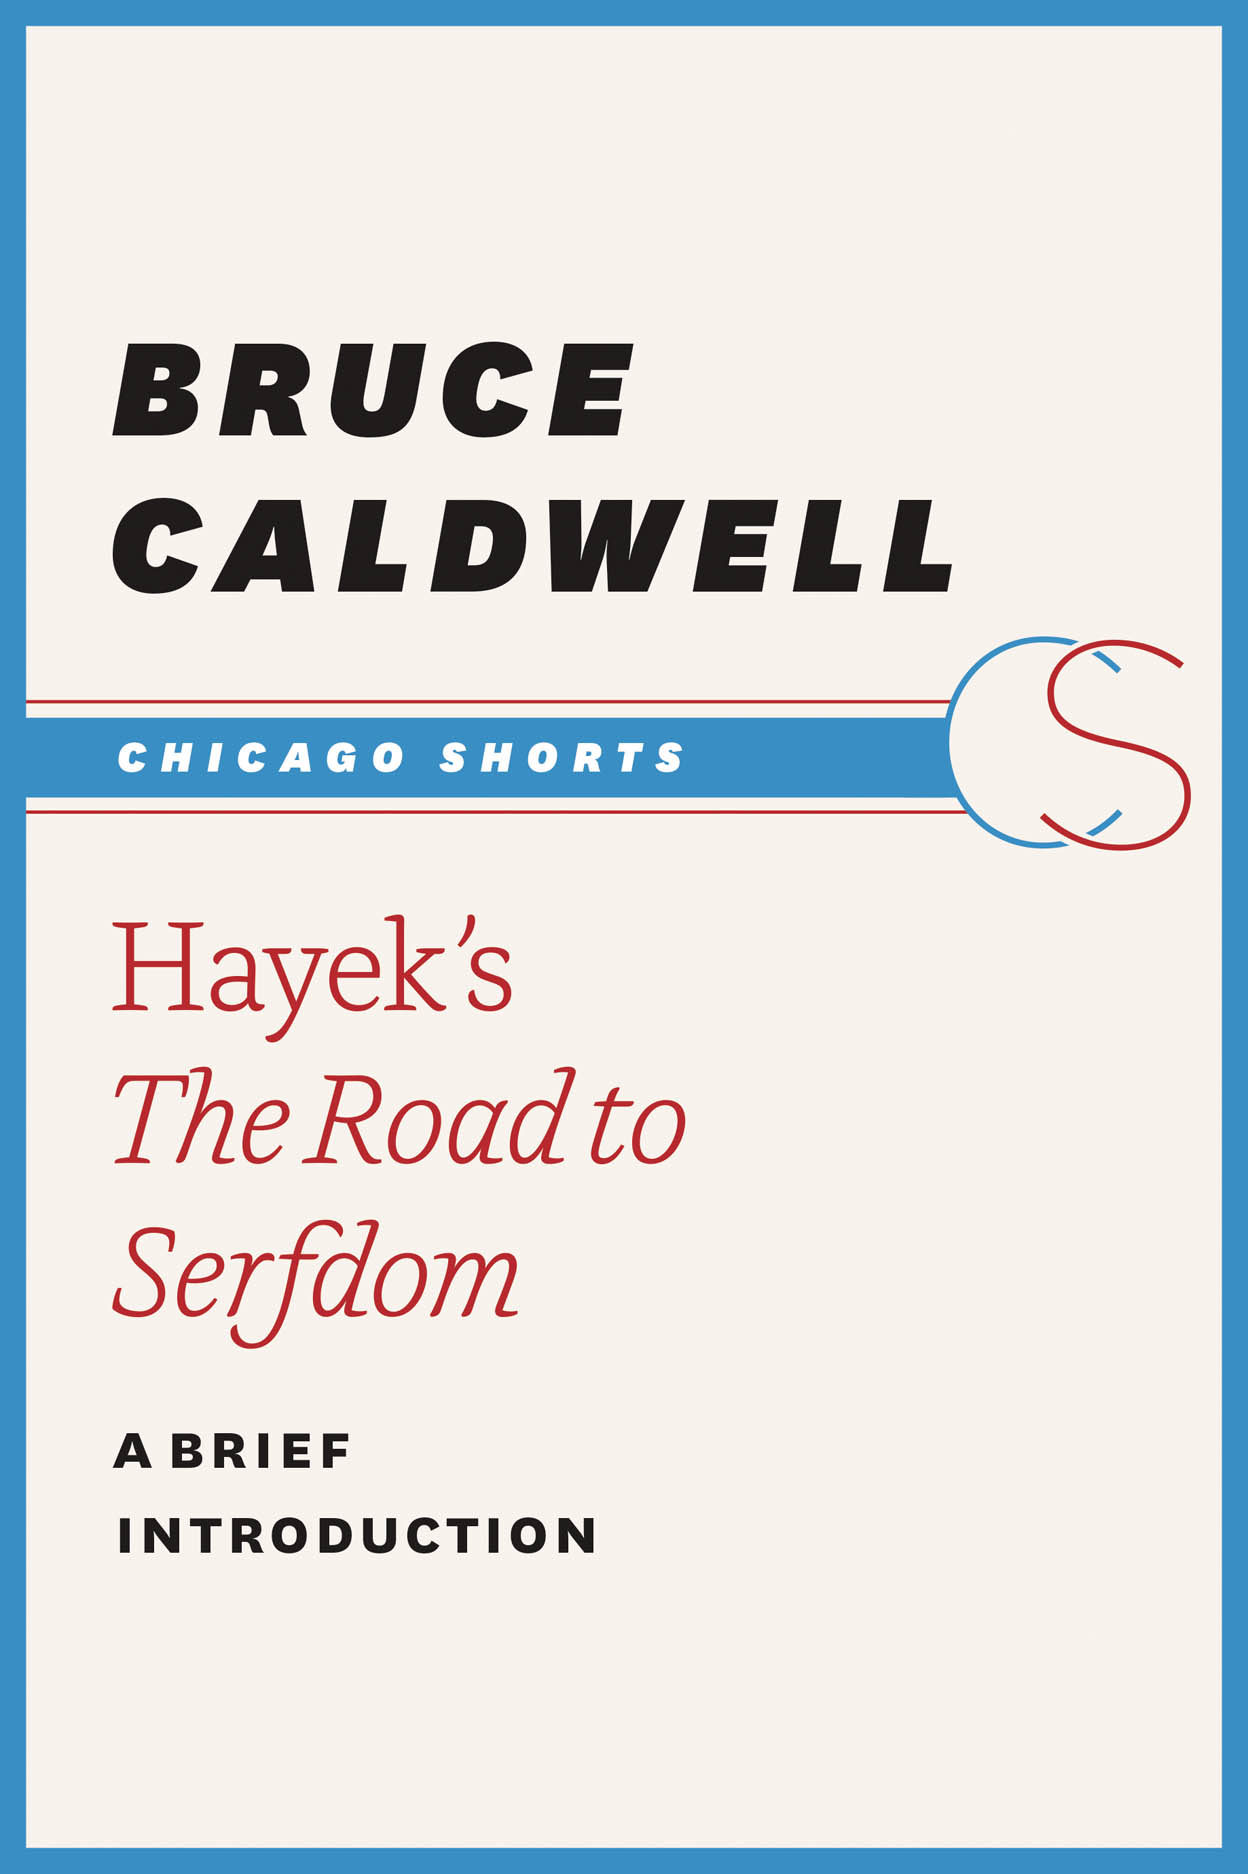 Hayek's The Road to Serfdom: A Brief Introduction